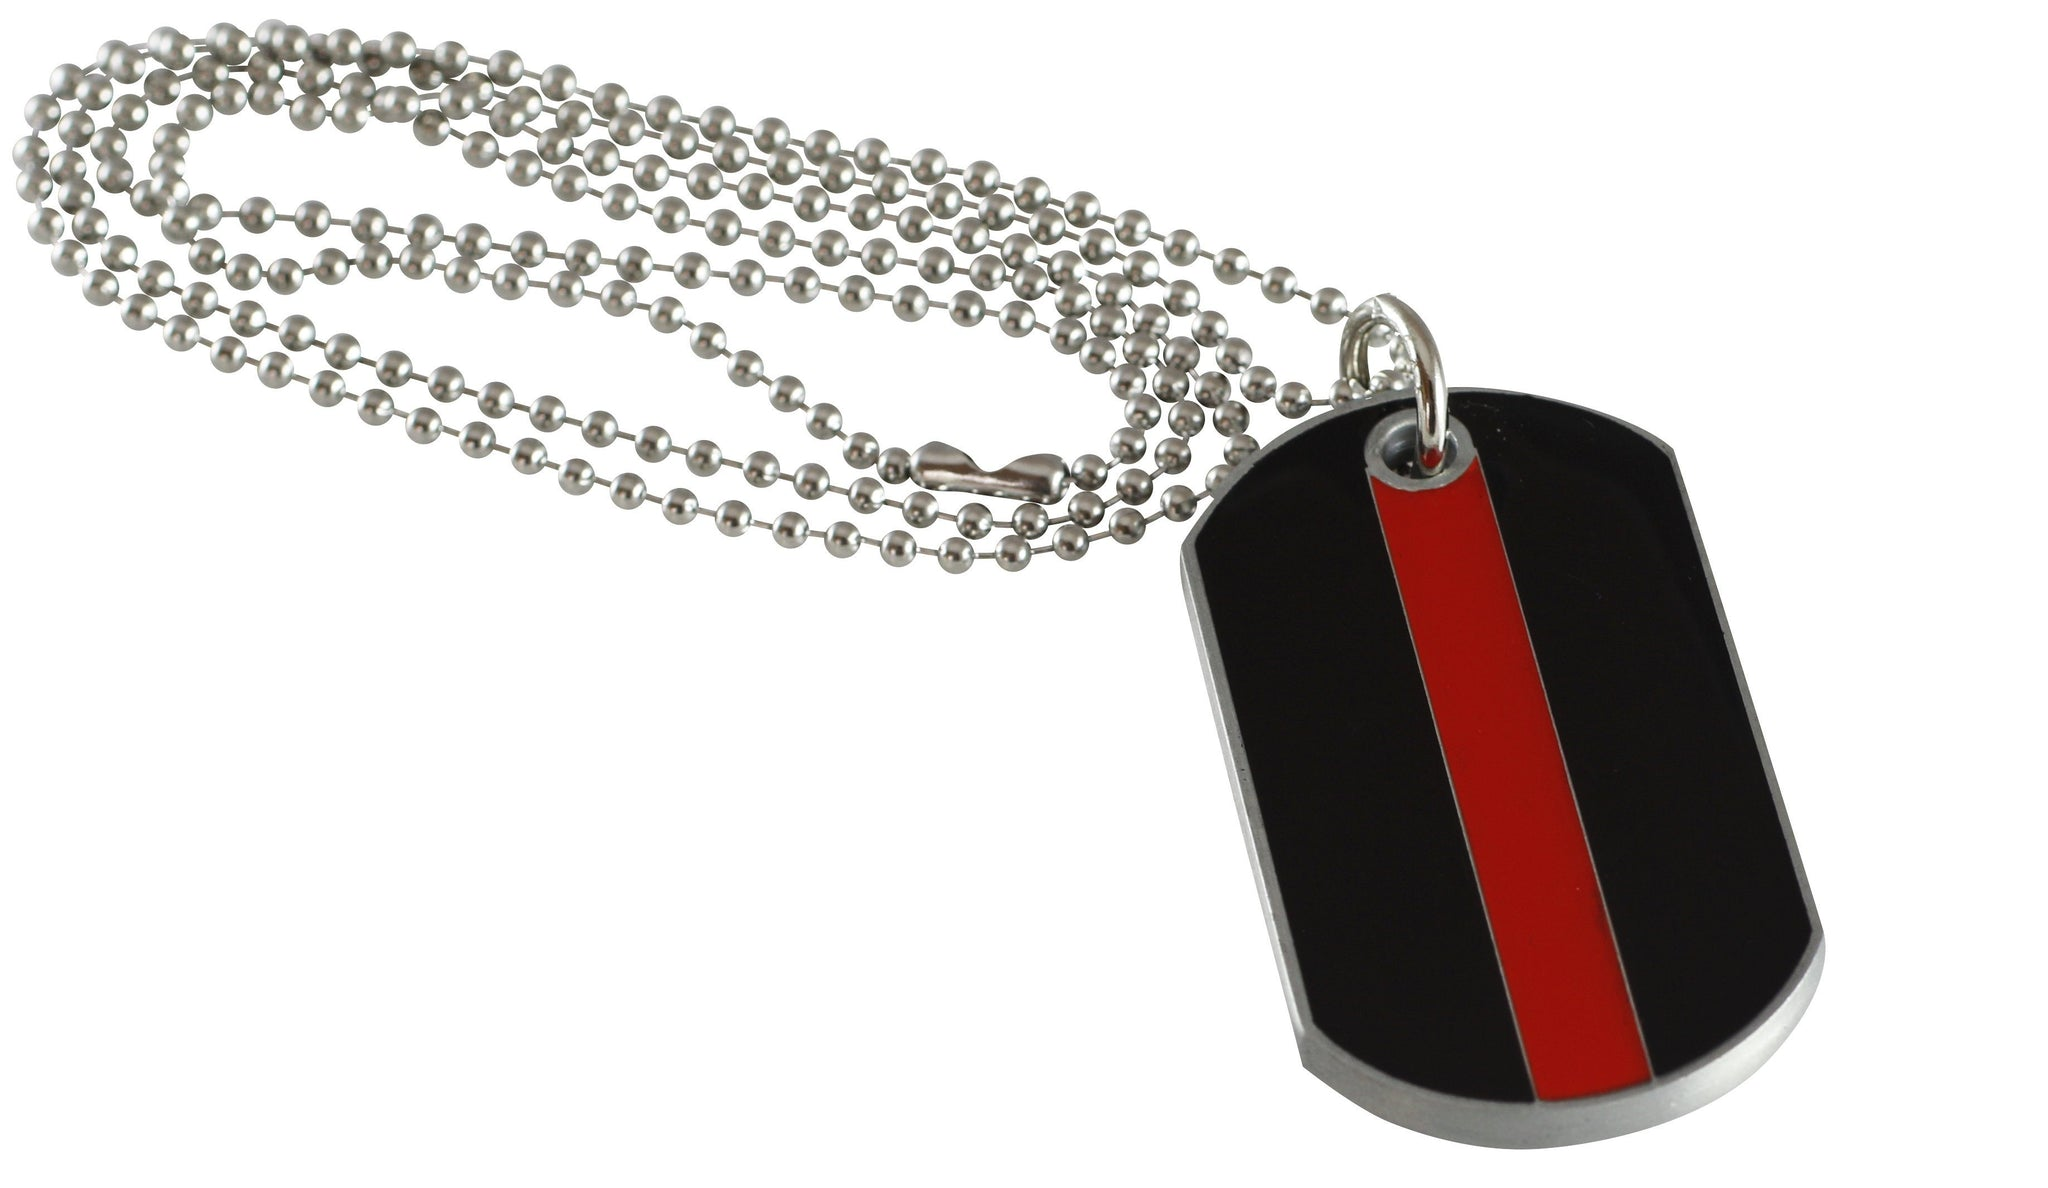 Firefighter Lives Matter Thin Red Line x Firefighter's Prayer Dog Tag